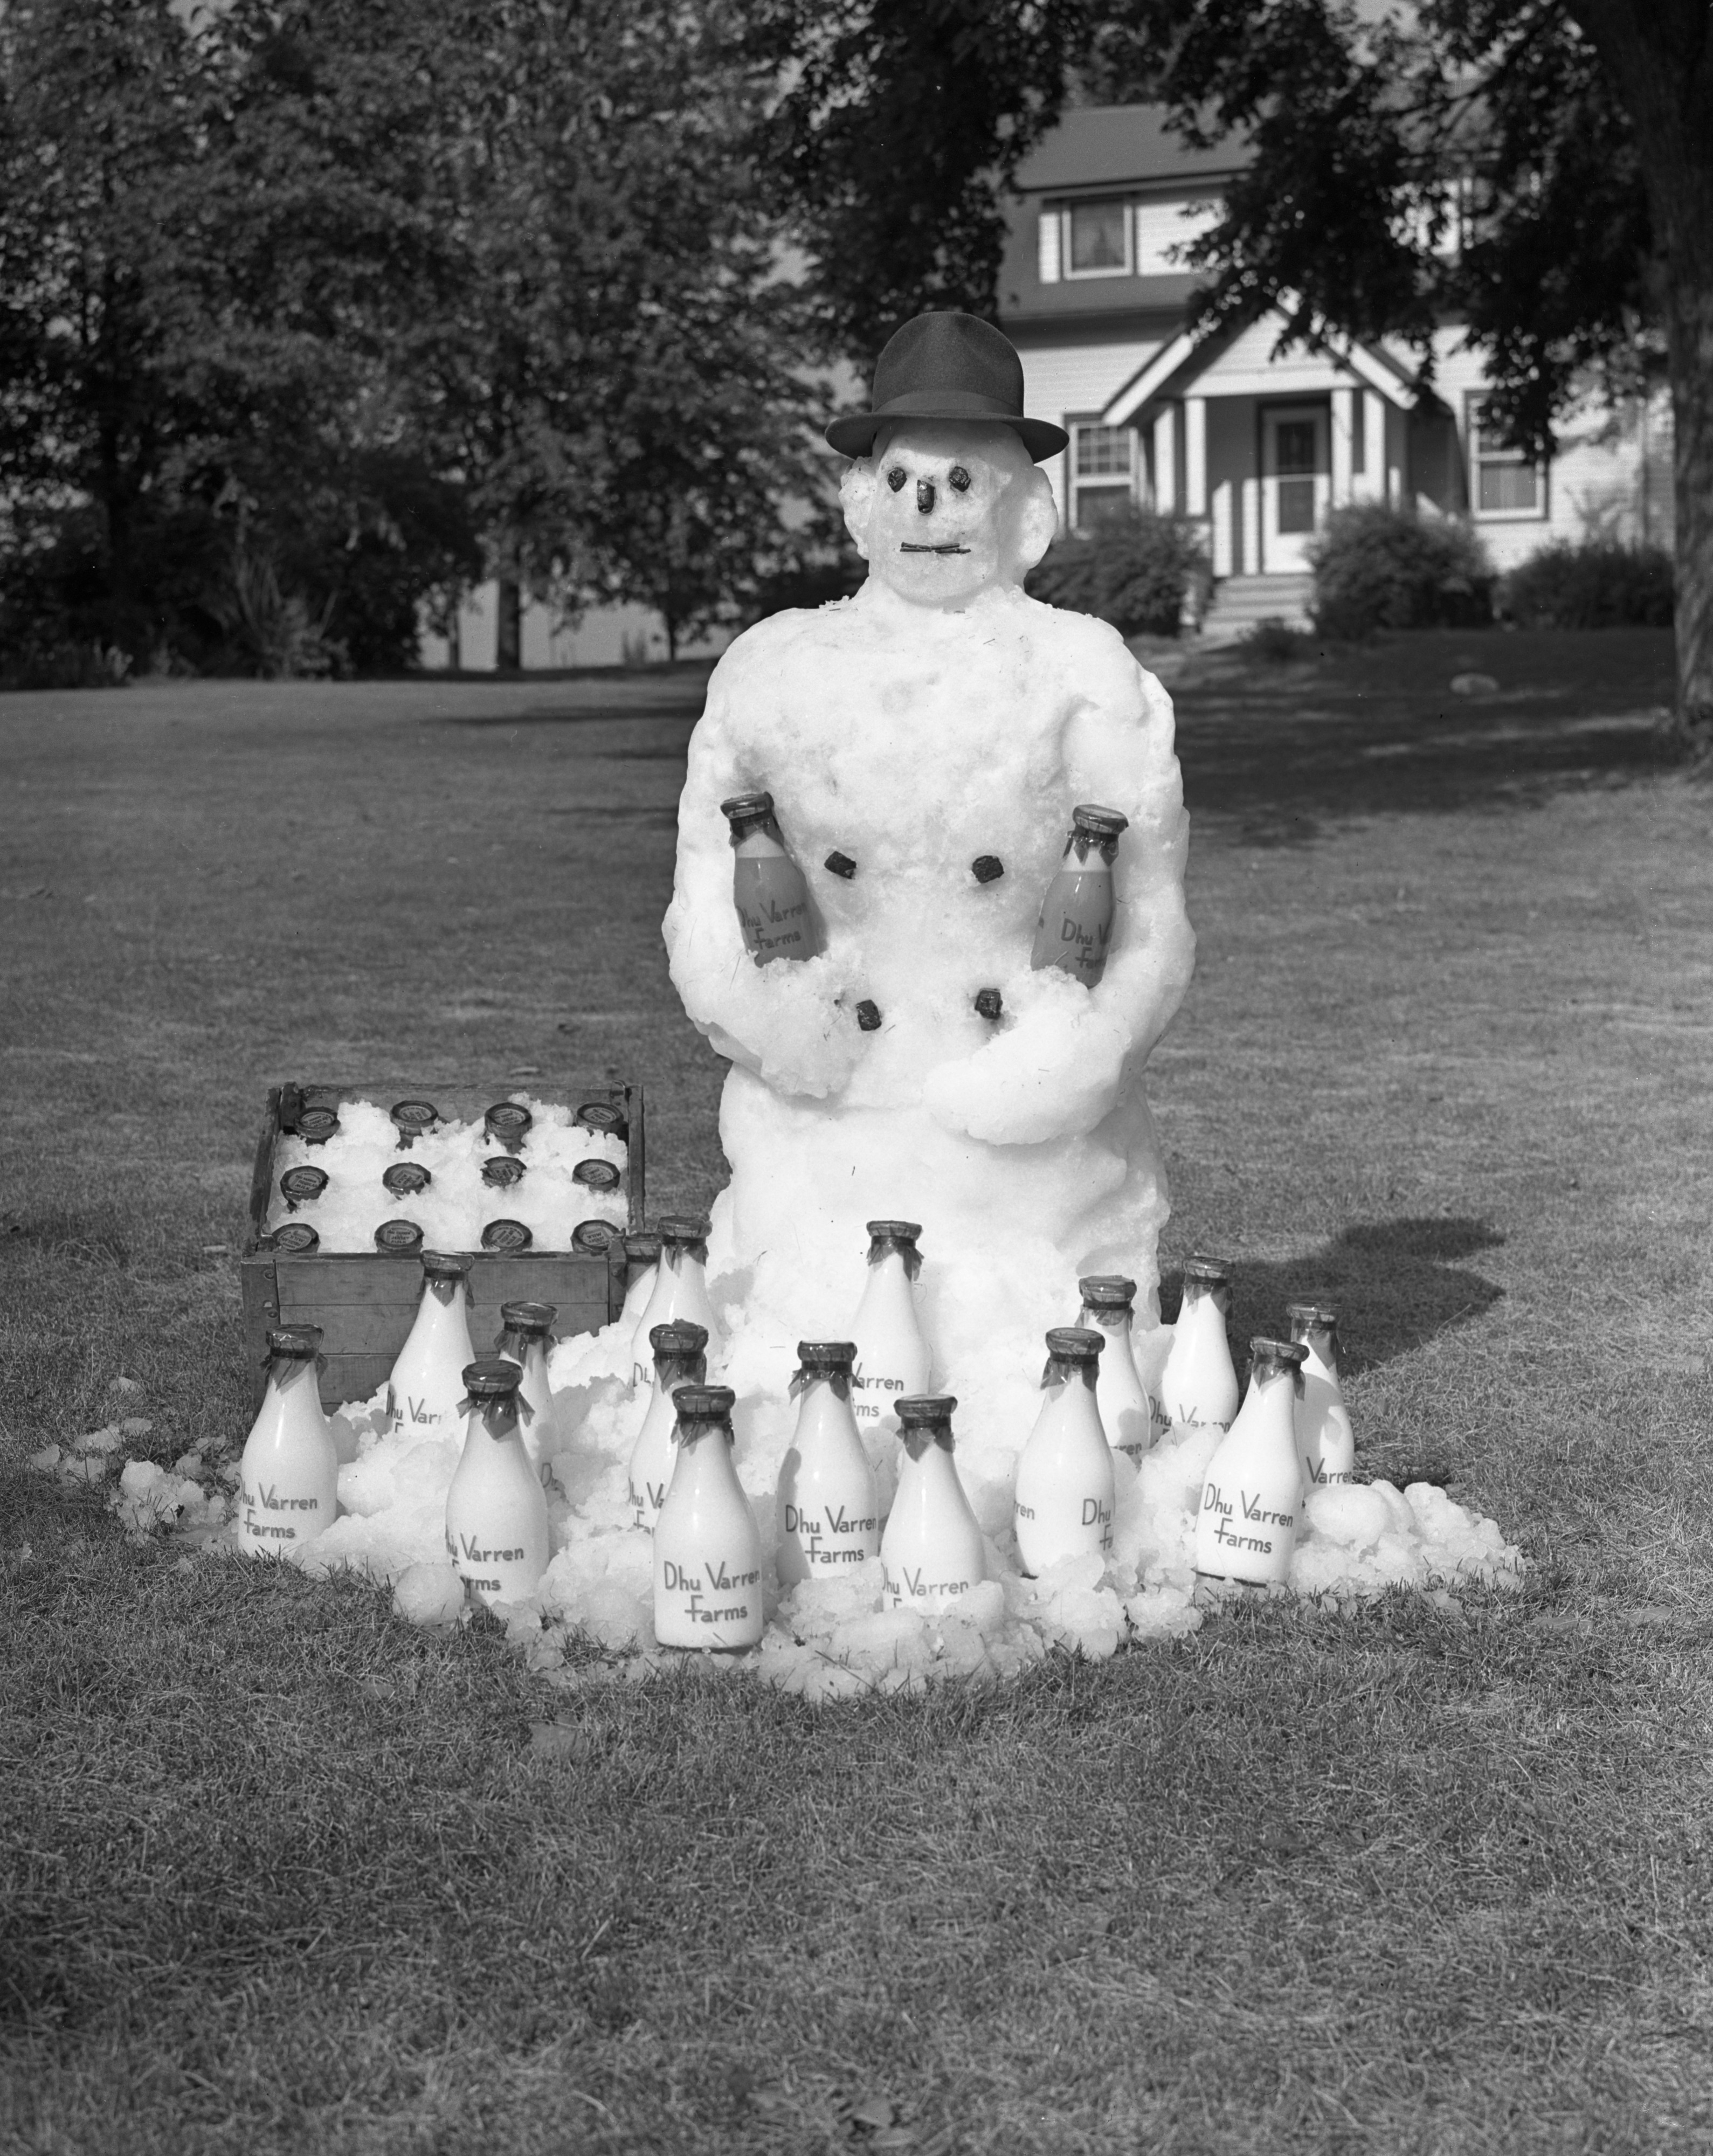 Snowman in Summer promotes Dhu Varren Farms Inc., 19391939 image